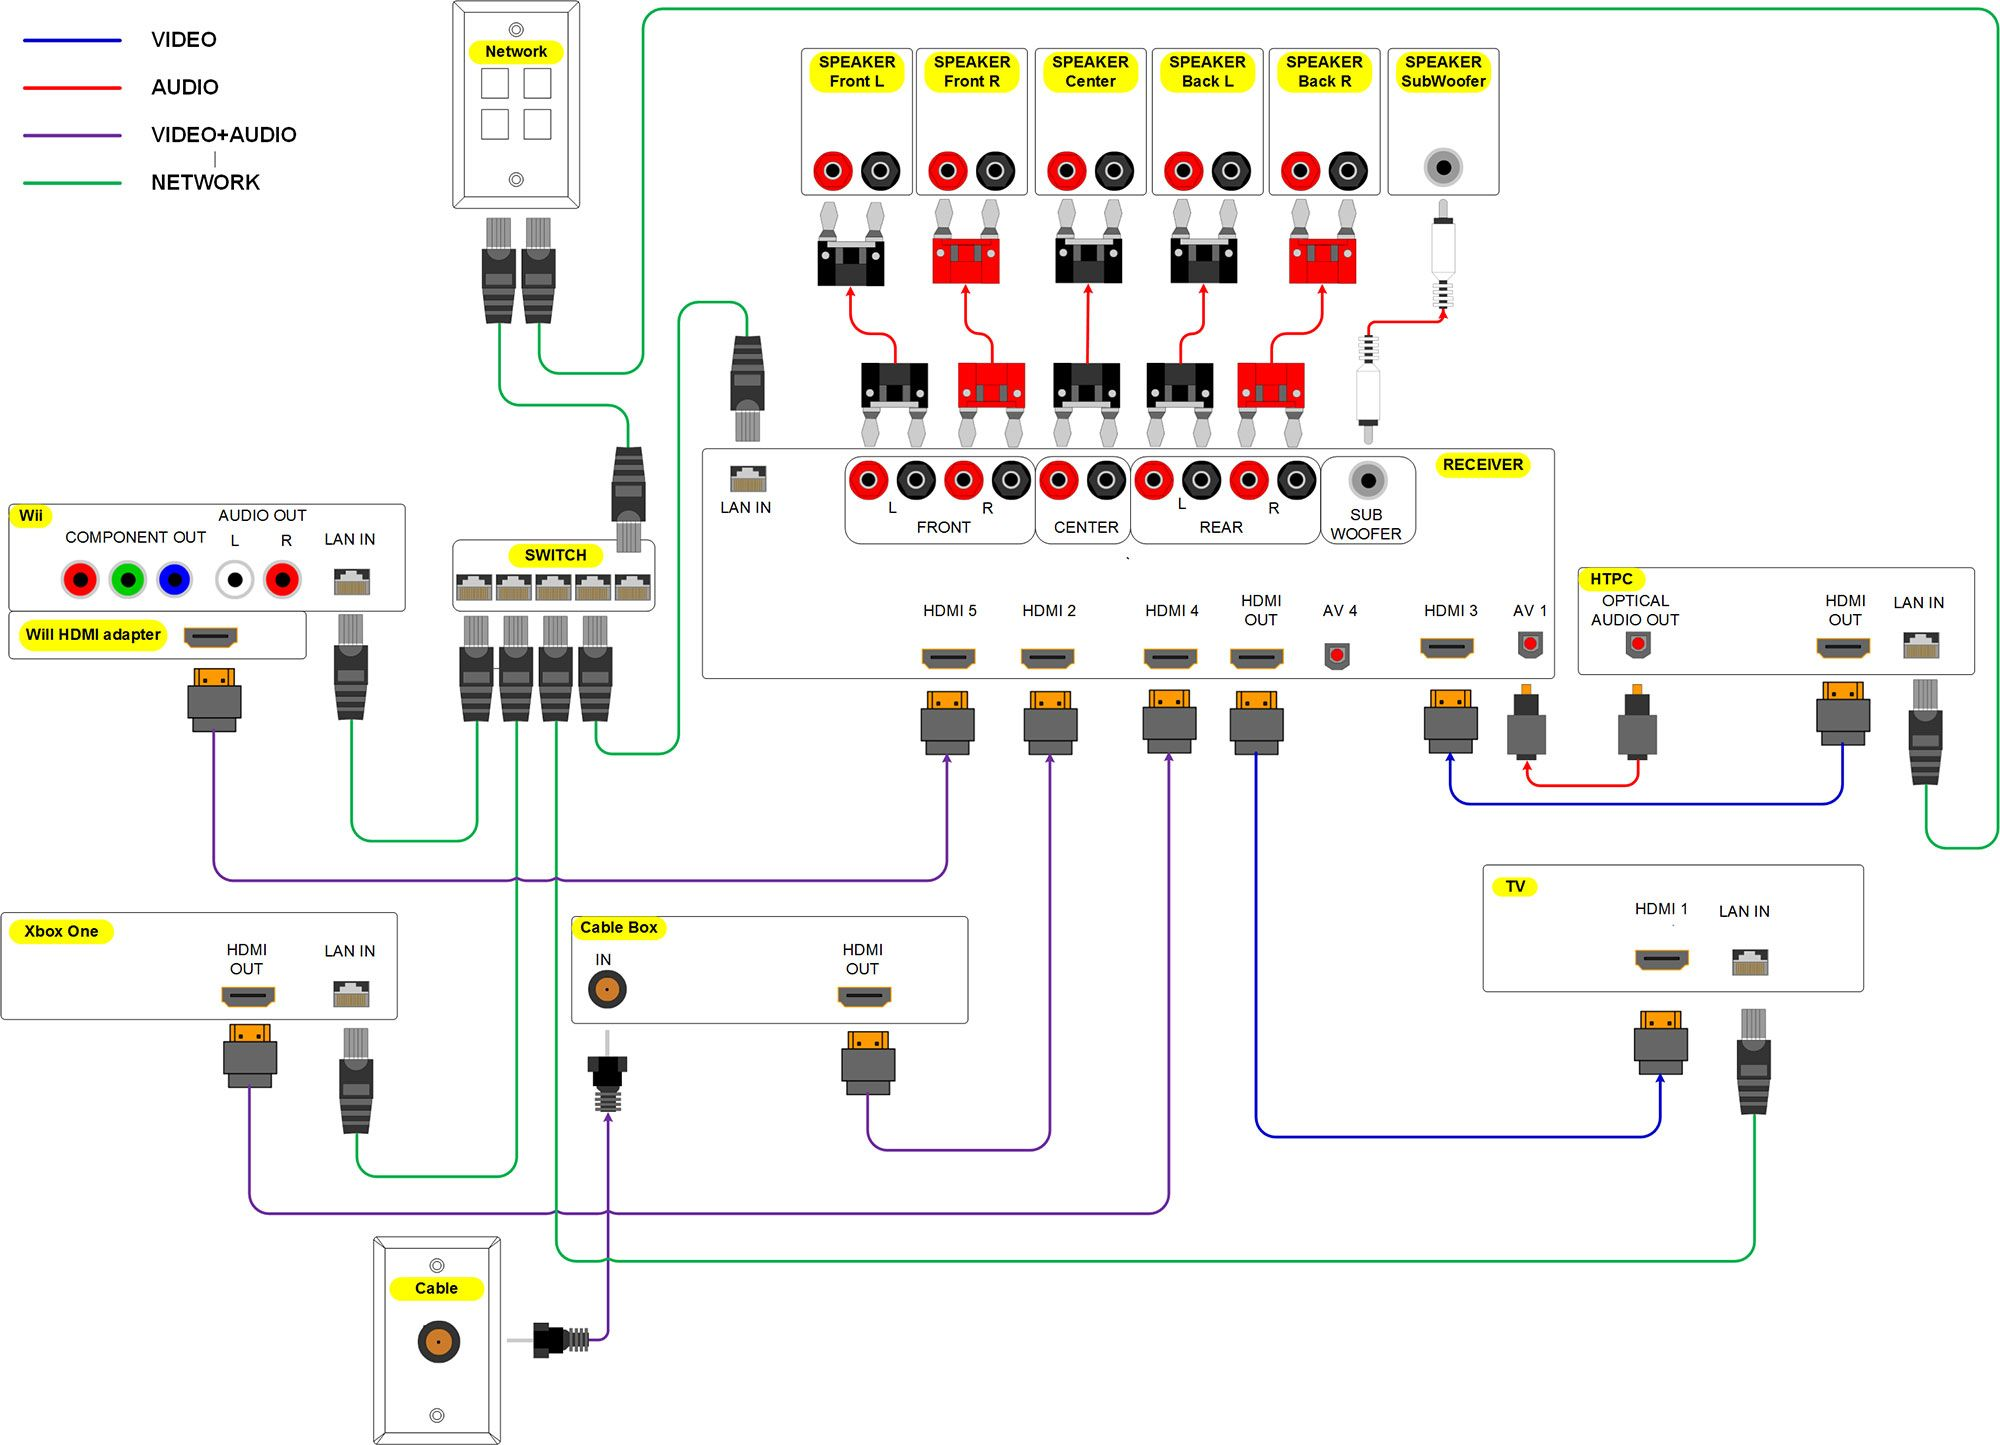 ae3ef715ed5d6ac384ec9c2b84075aef home theater wiring diagram home theater projector wiring \u2022 wiring home subwoofer wiring diagrams at panicattacktreatment.co